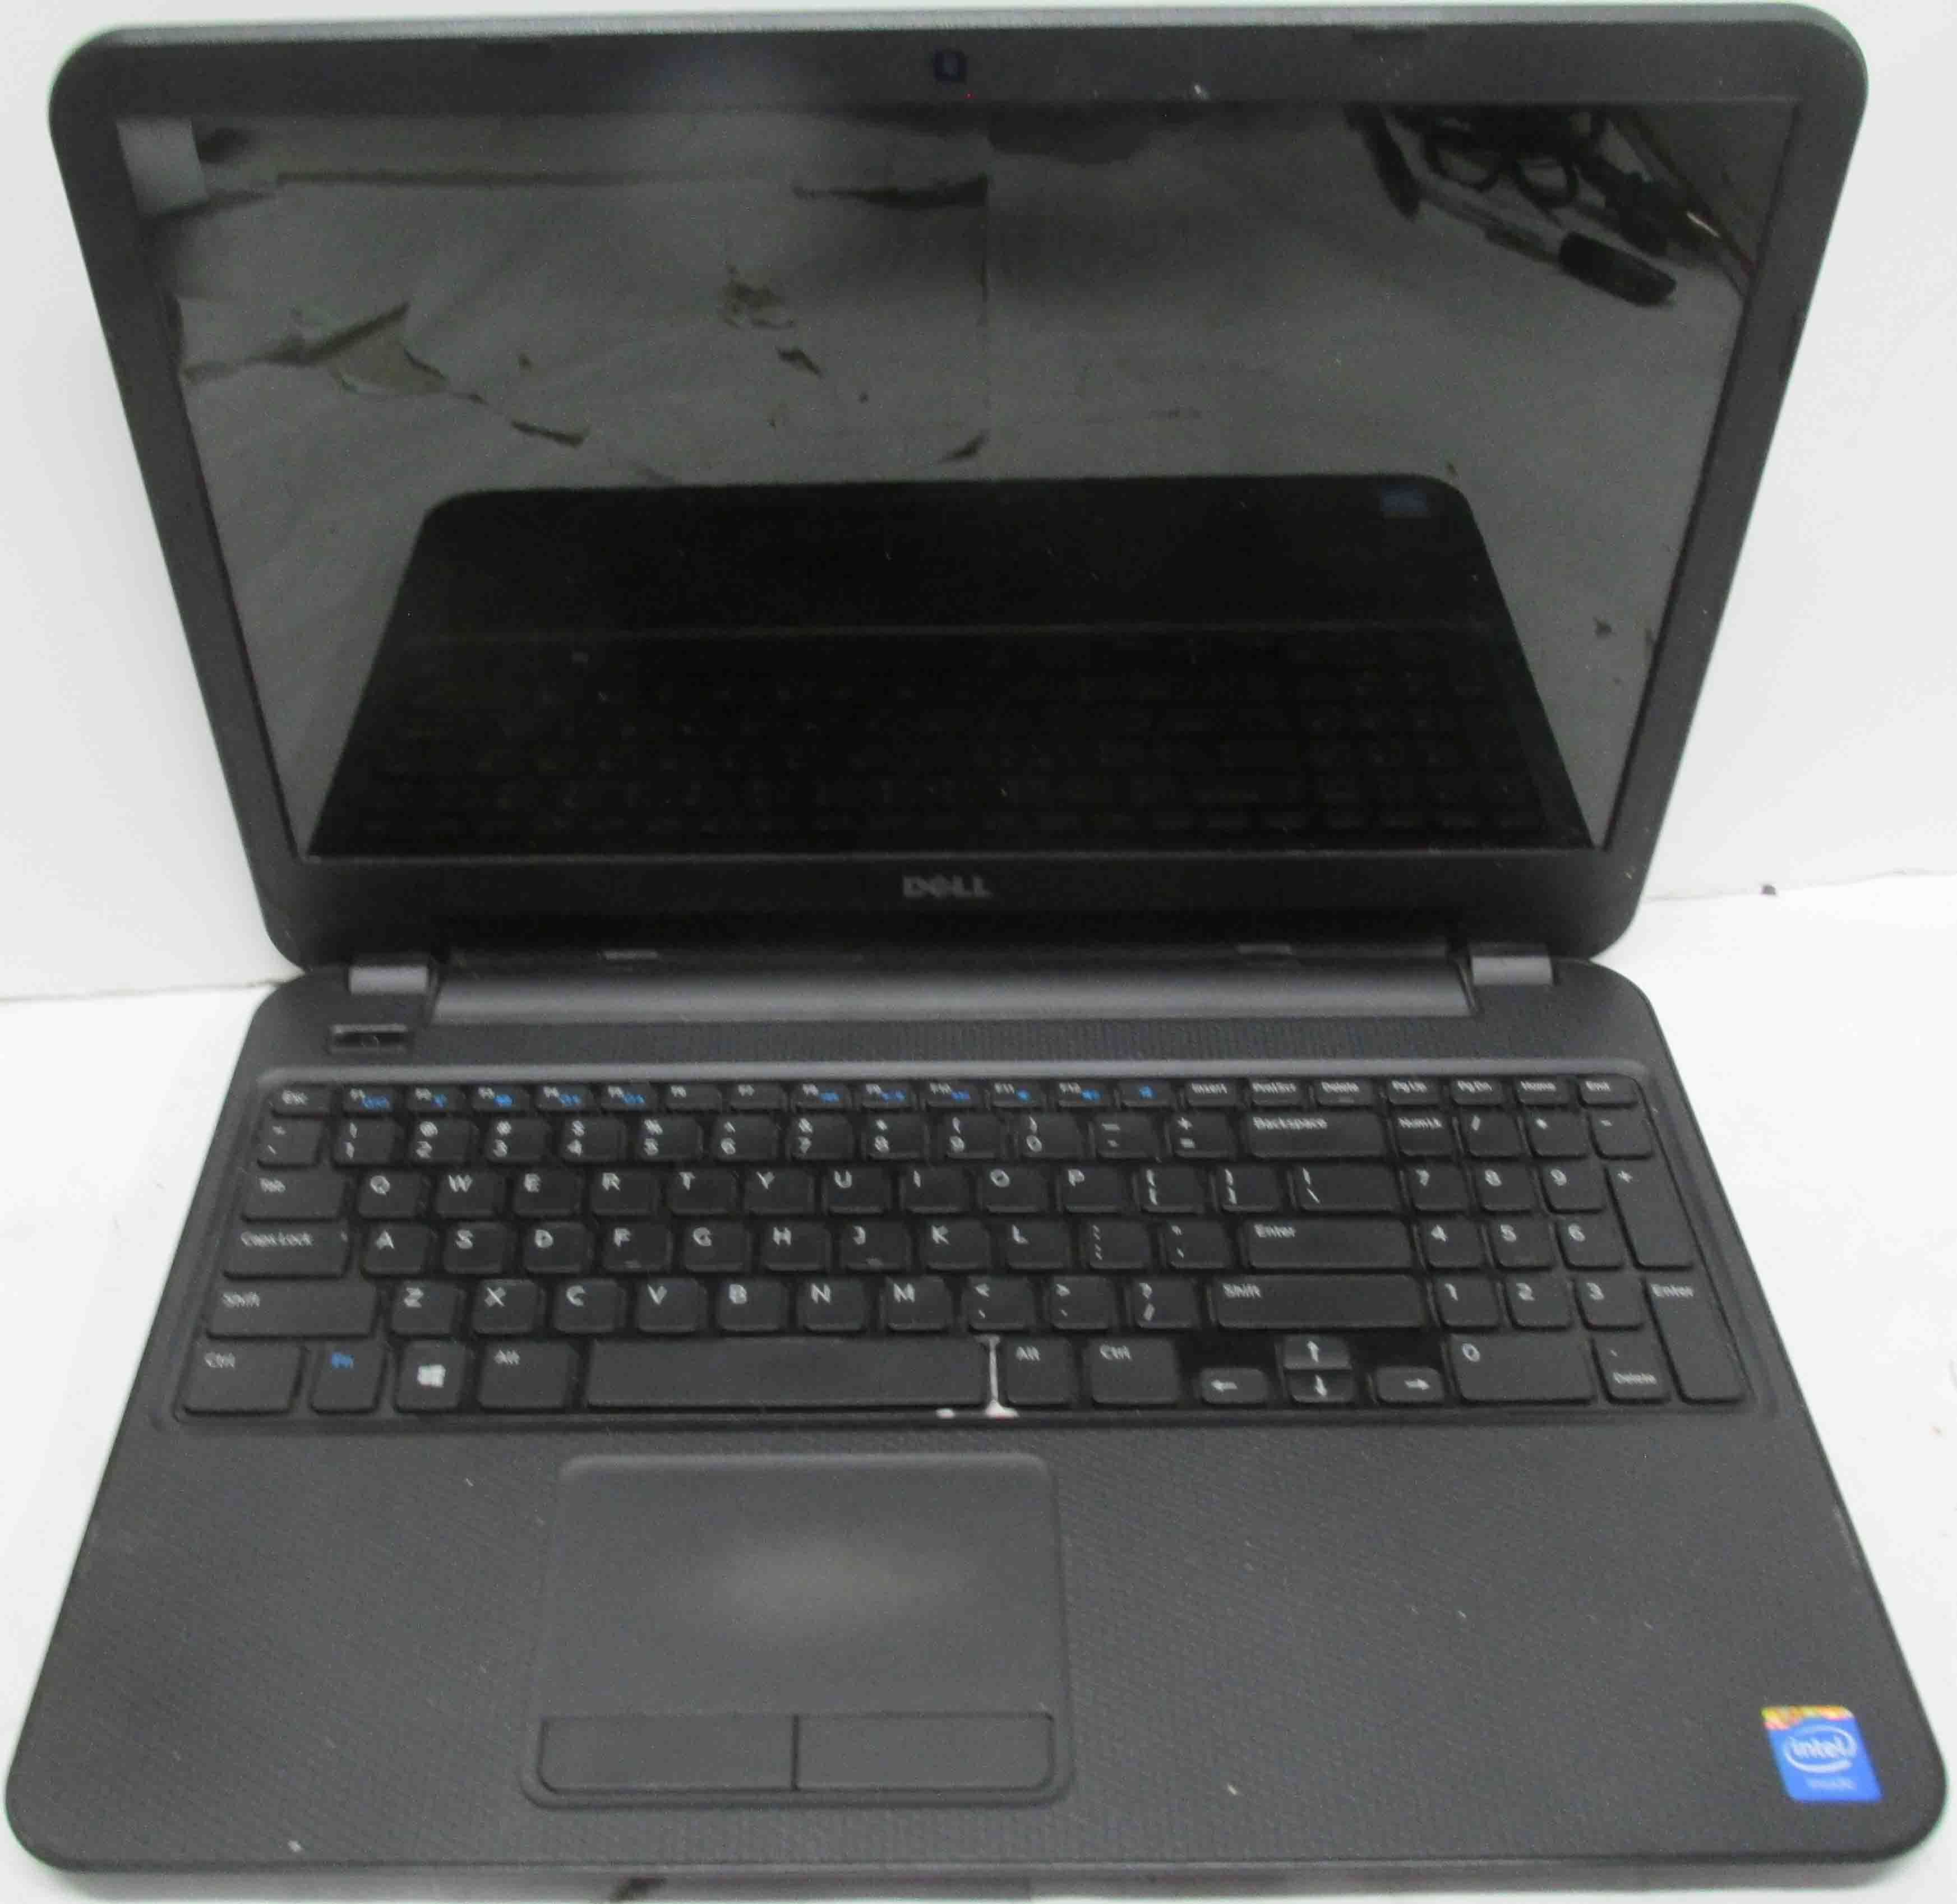 Dell Inspiron 15-3531 Laptop with Charger - SOLD AS IS - **FIX OR PARTS**